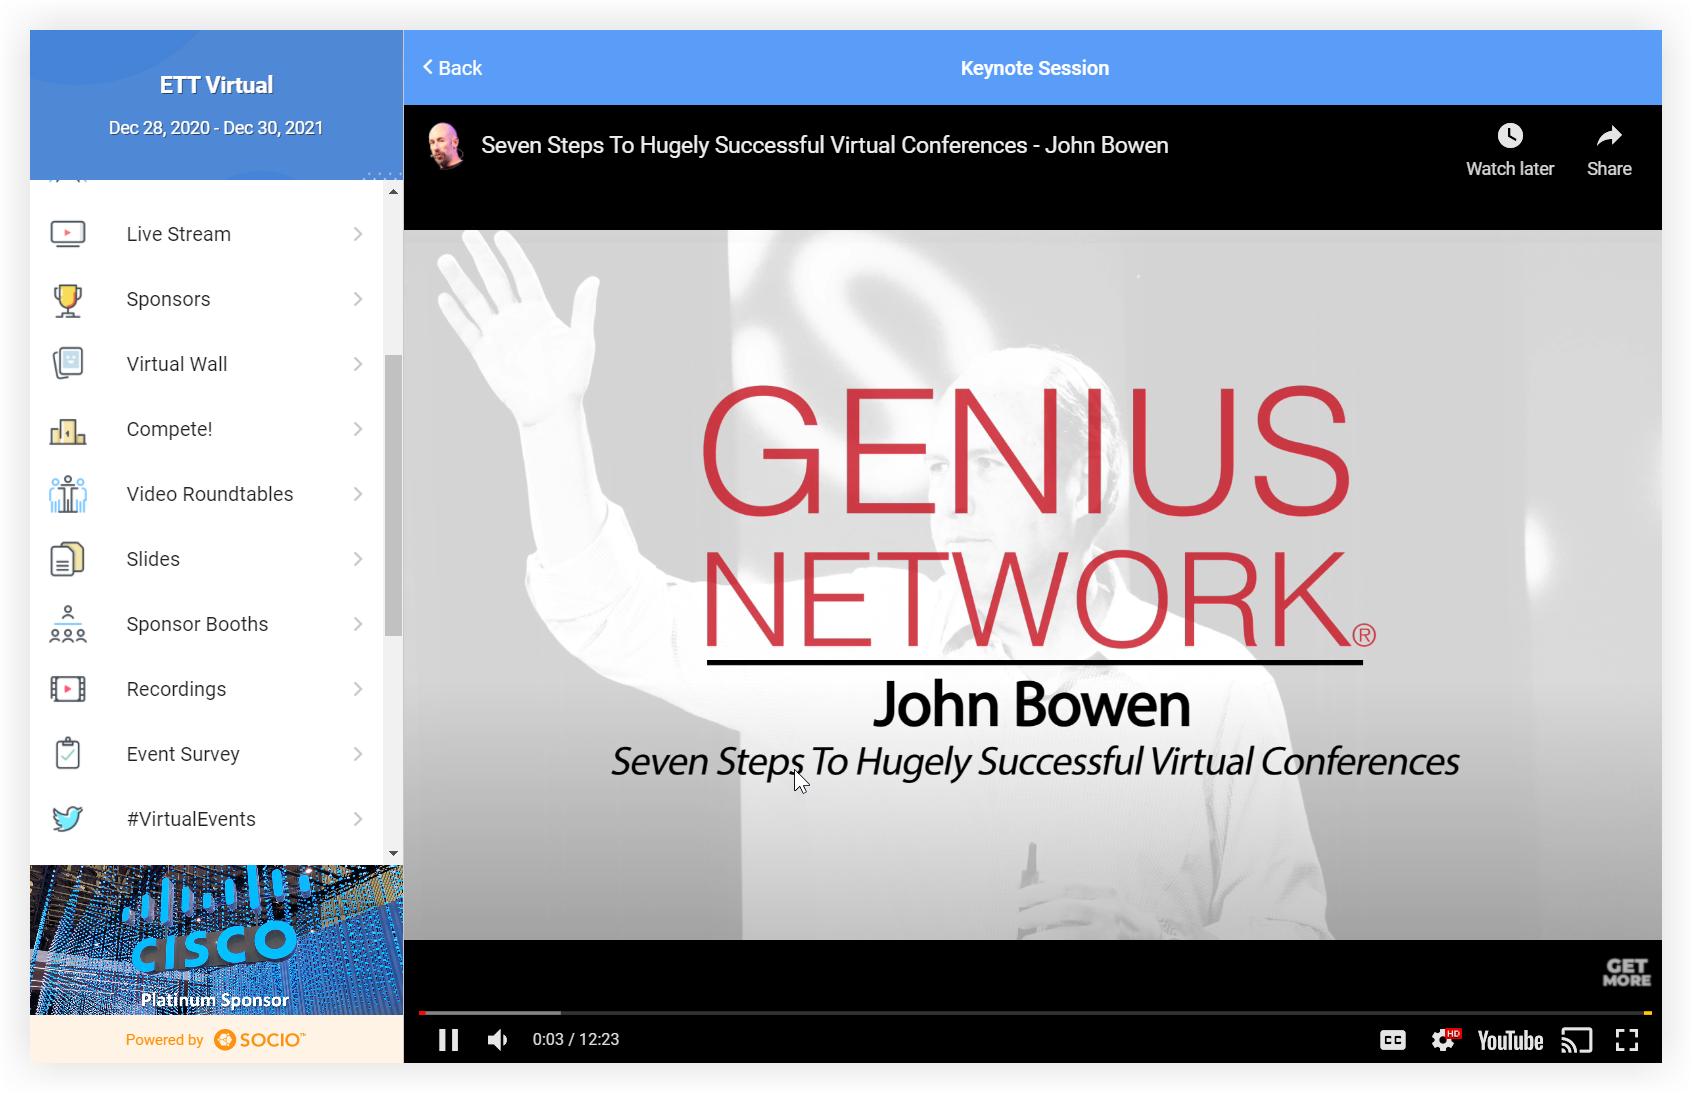 Screenshot of a YouTube video embedded in the Socio platform.